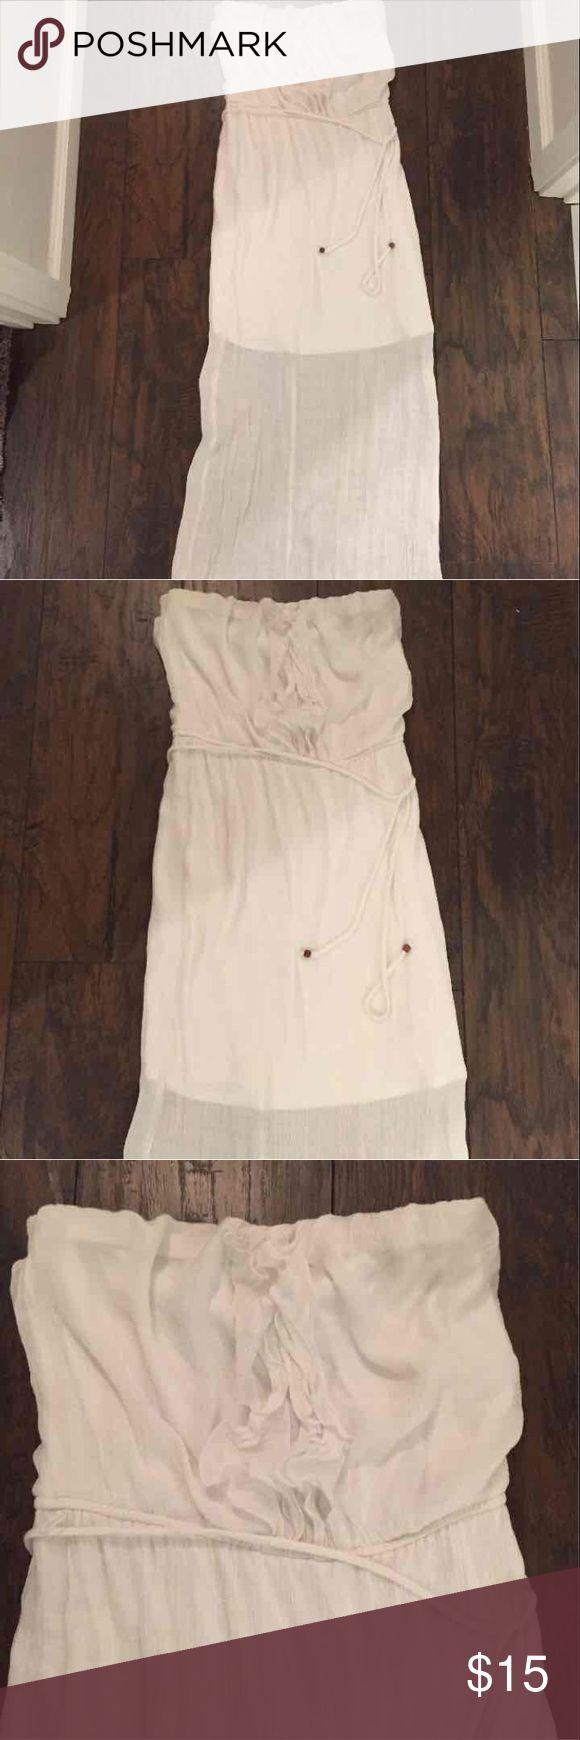 White tube top maxi dress From Maurice's. Like new, no tags! Sheer with mini slip underneath. Perfect white dress for any occasion; summer beach wear! Maurices Dresses Maxi